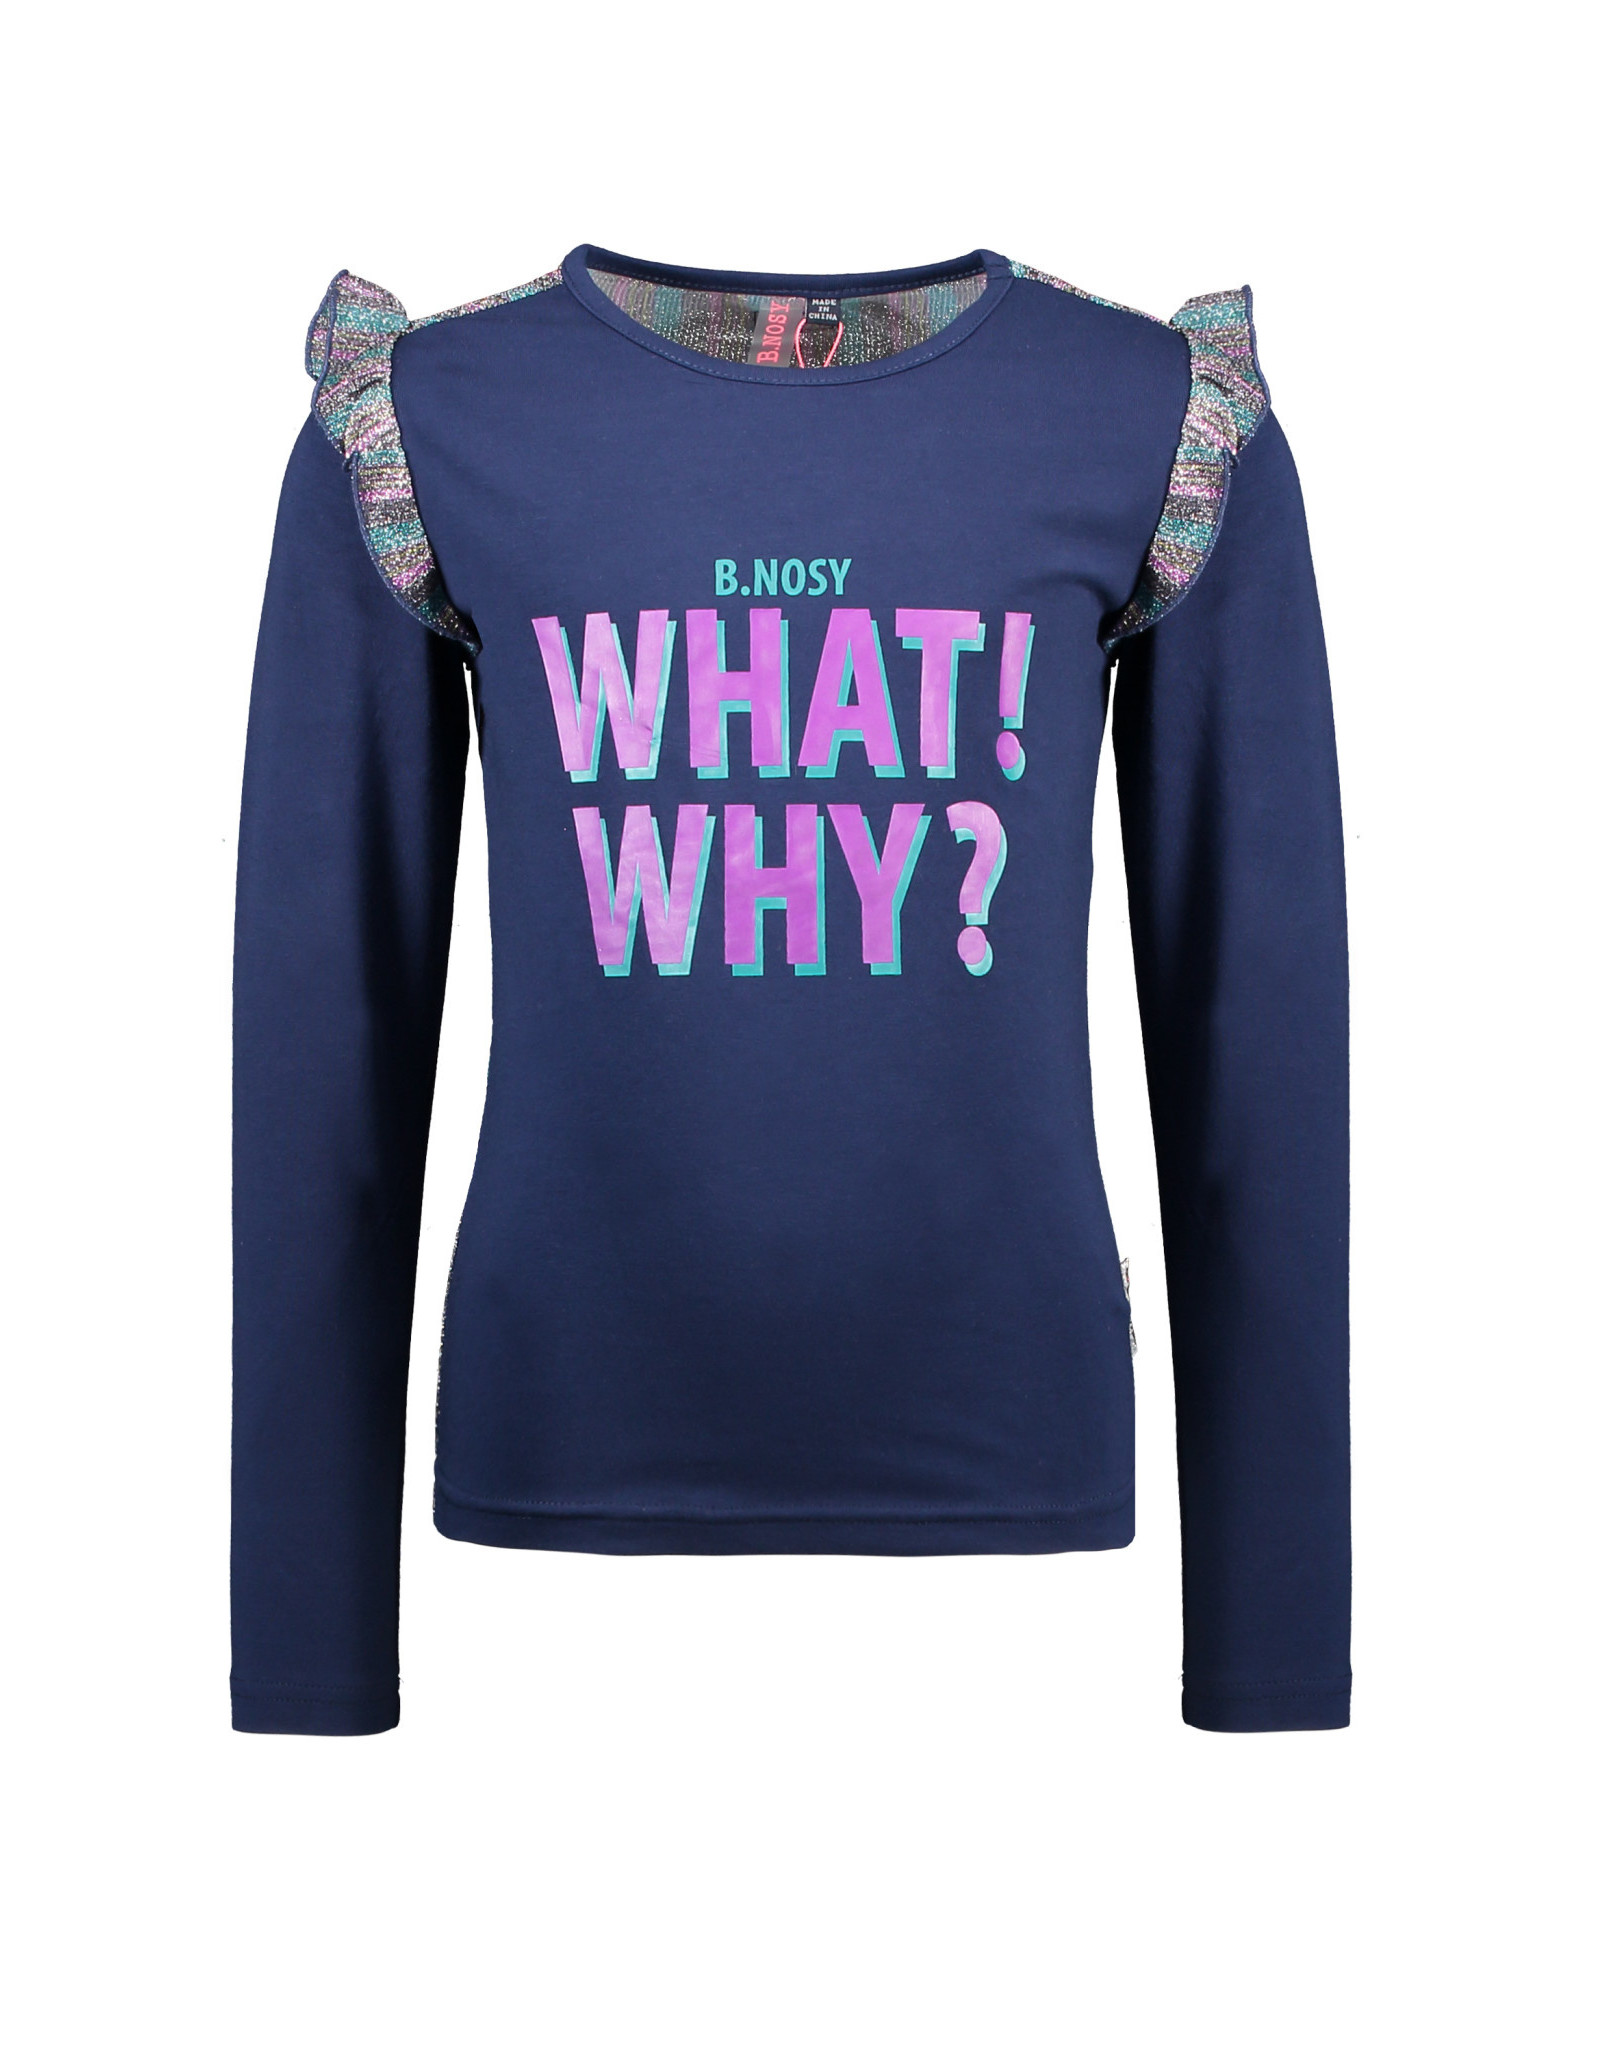 B.Nosy B.Nosy meisjes shirt What! Why? Space Blue